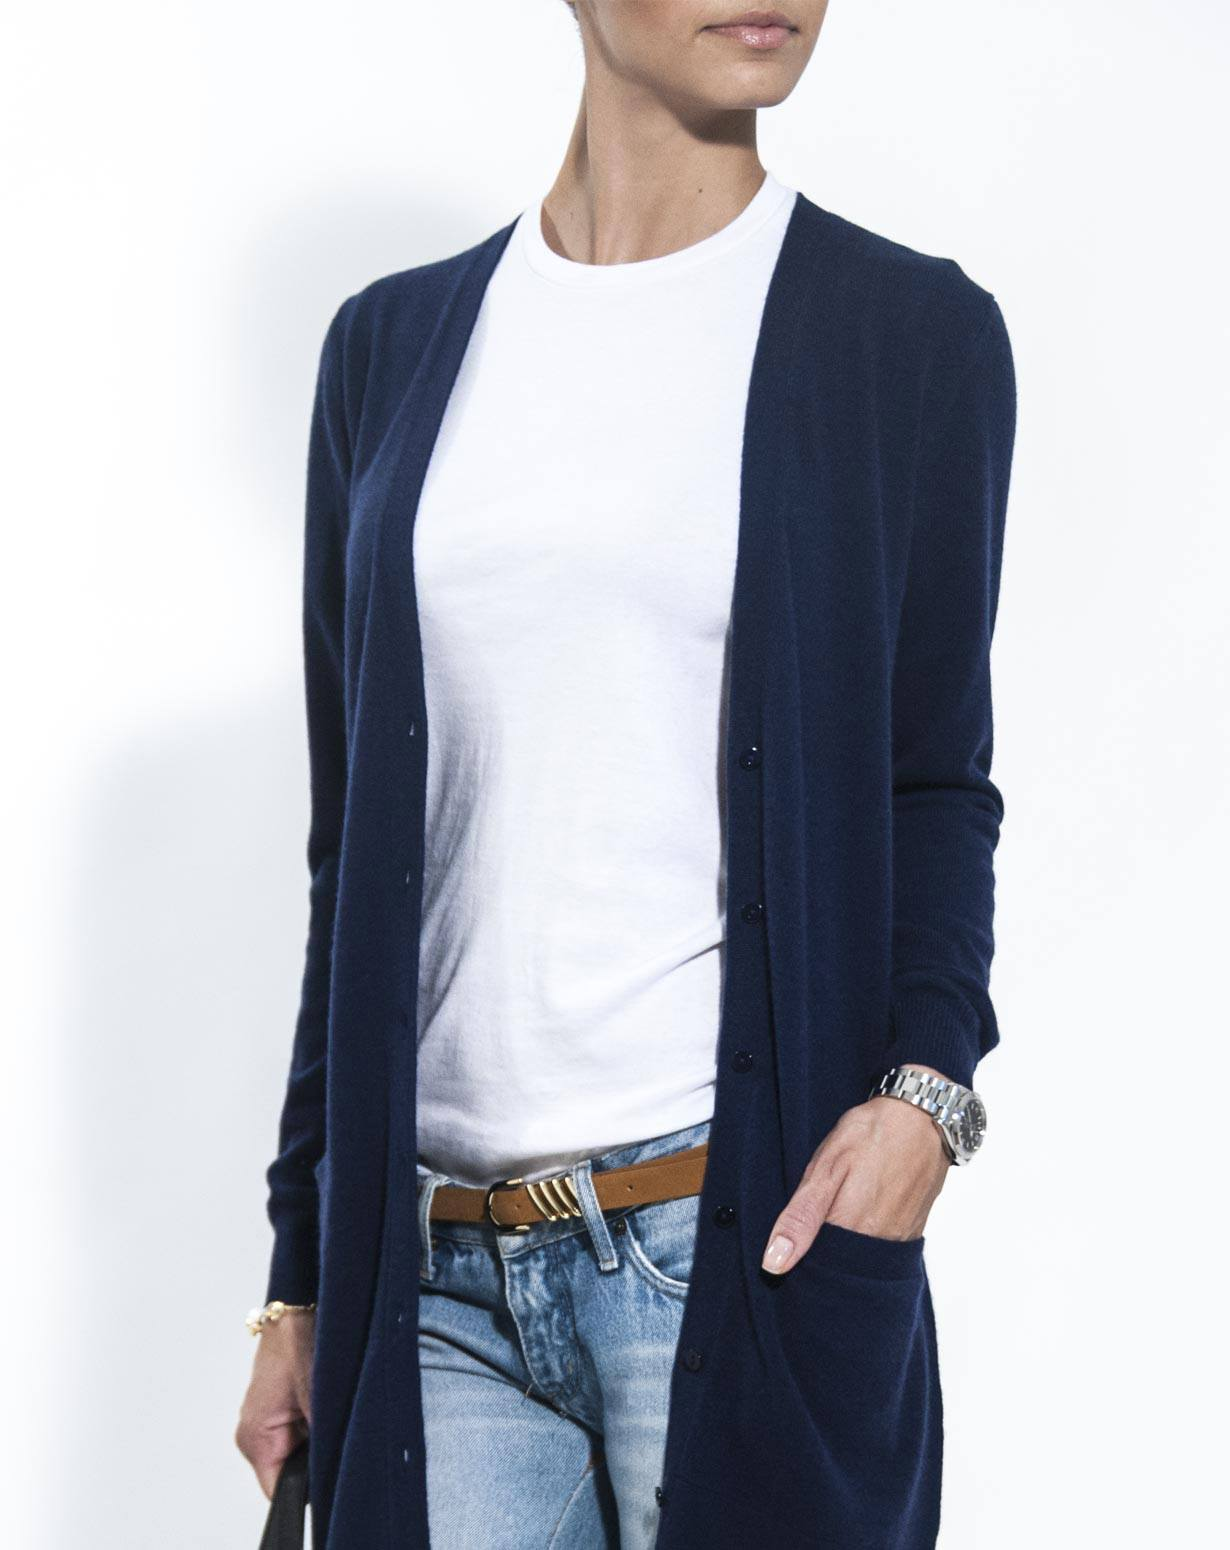 Ladies Navy Blue Cardigan - Cashmere Sweater England